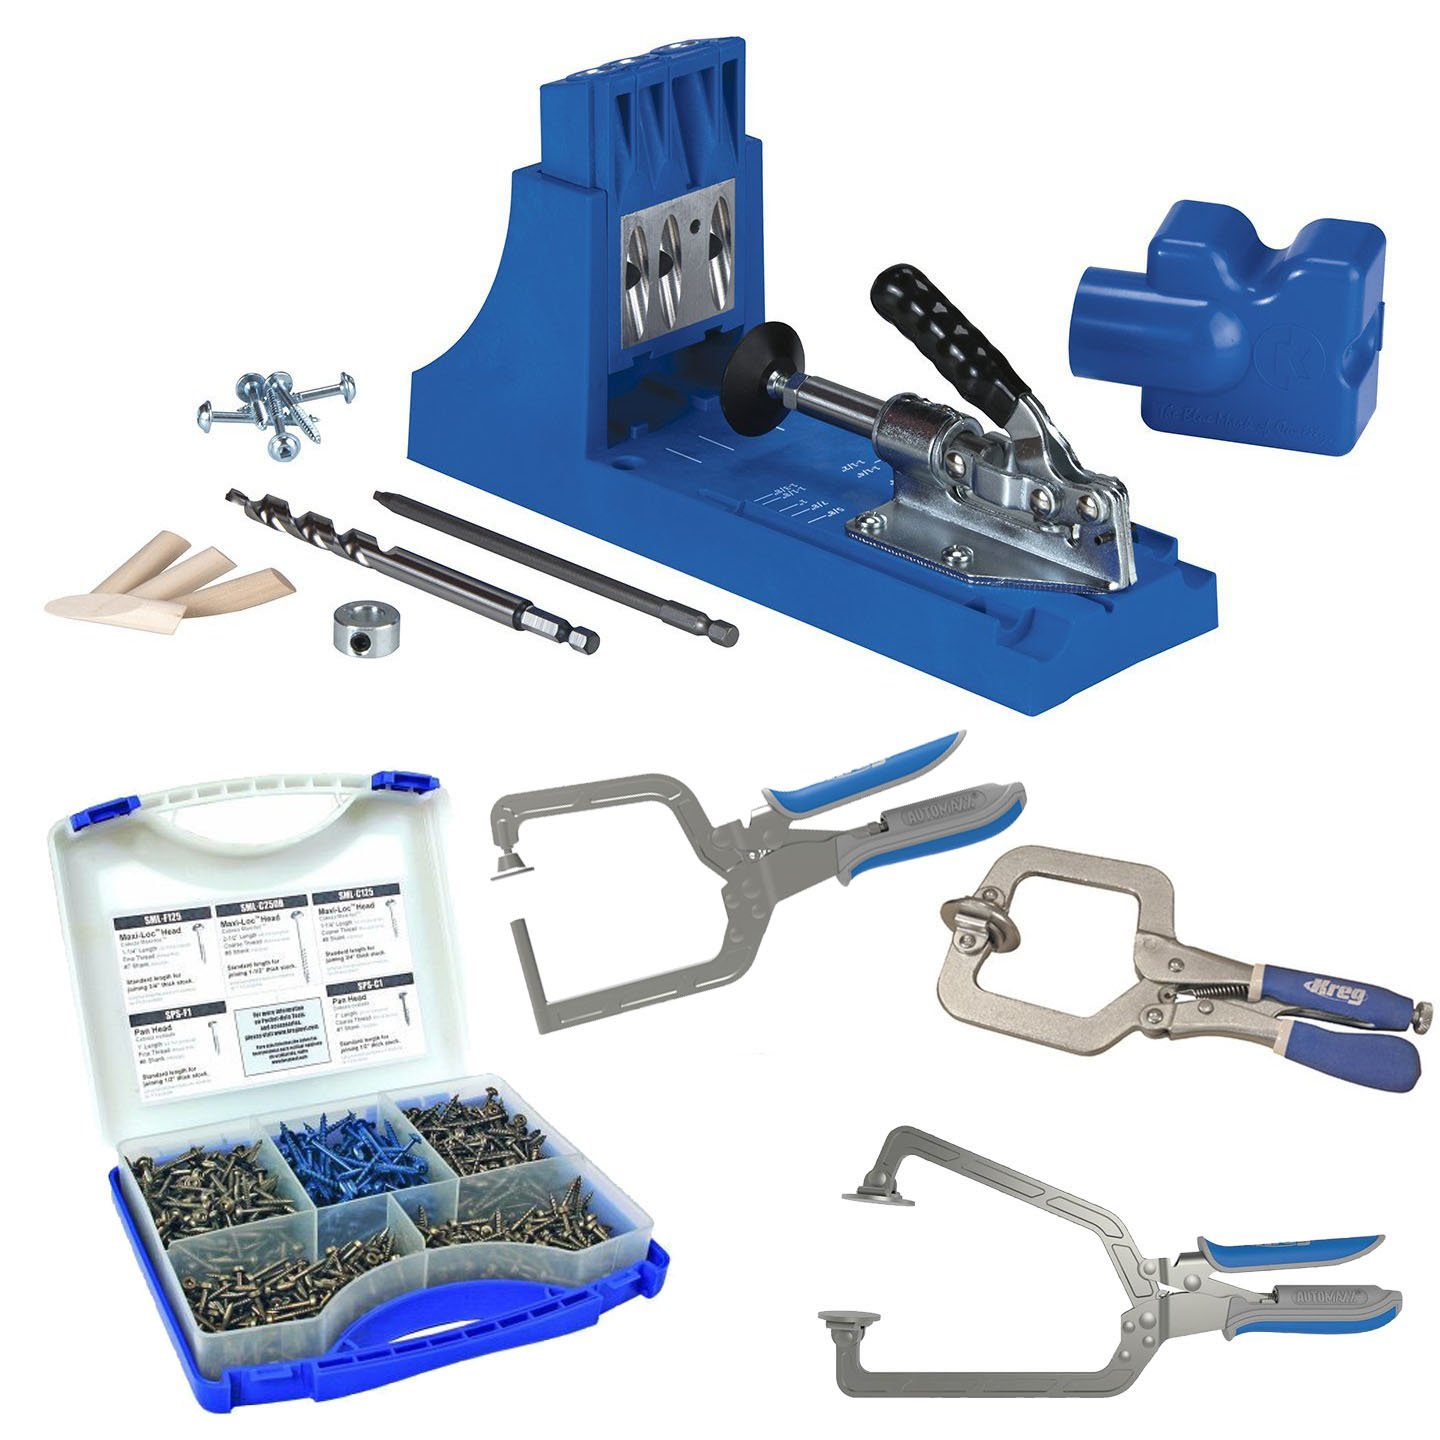 Kreg Jig K4 Pocket Hole System with Screw Kit and 3-pc Clamp Set